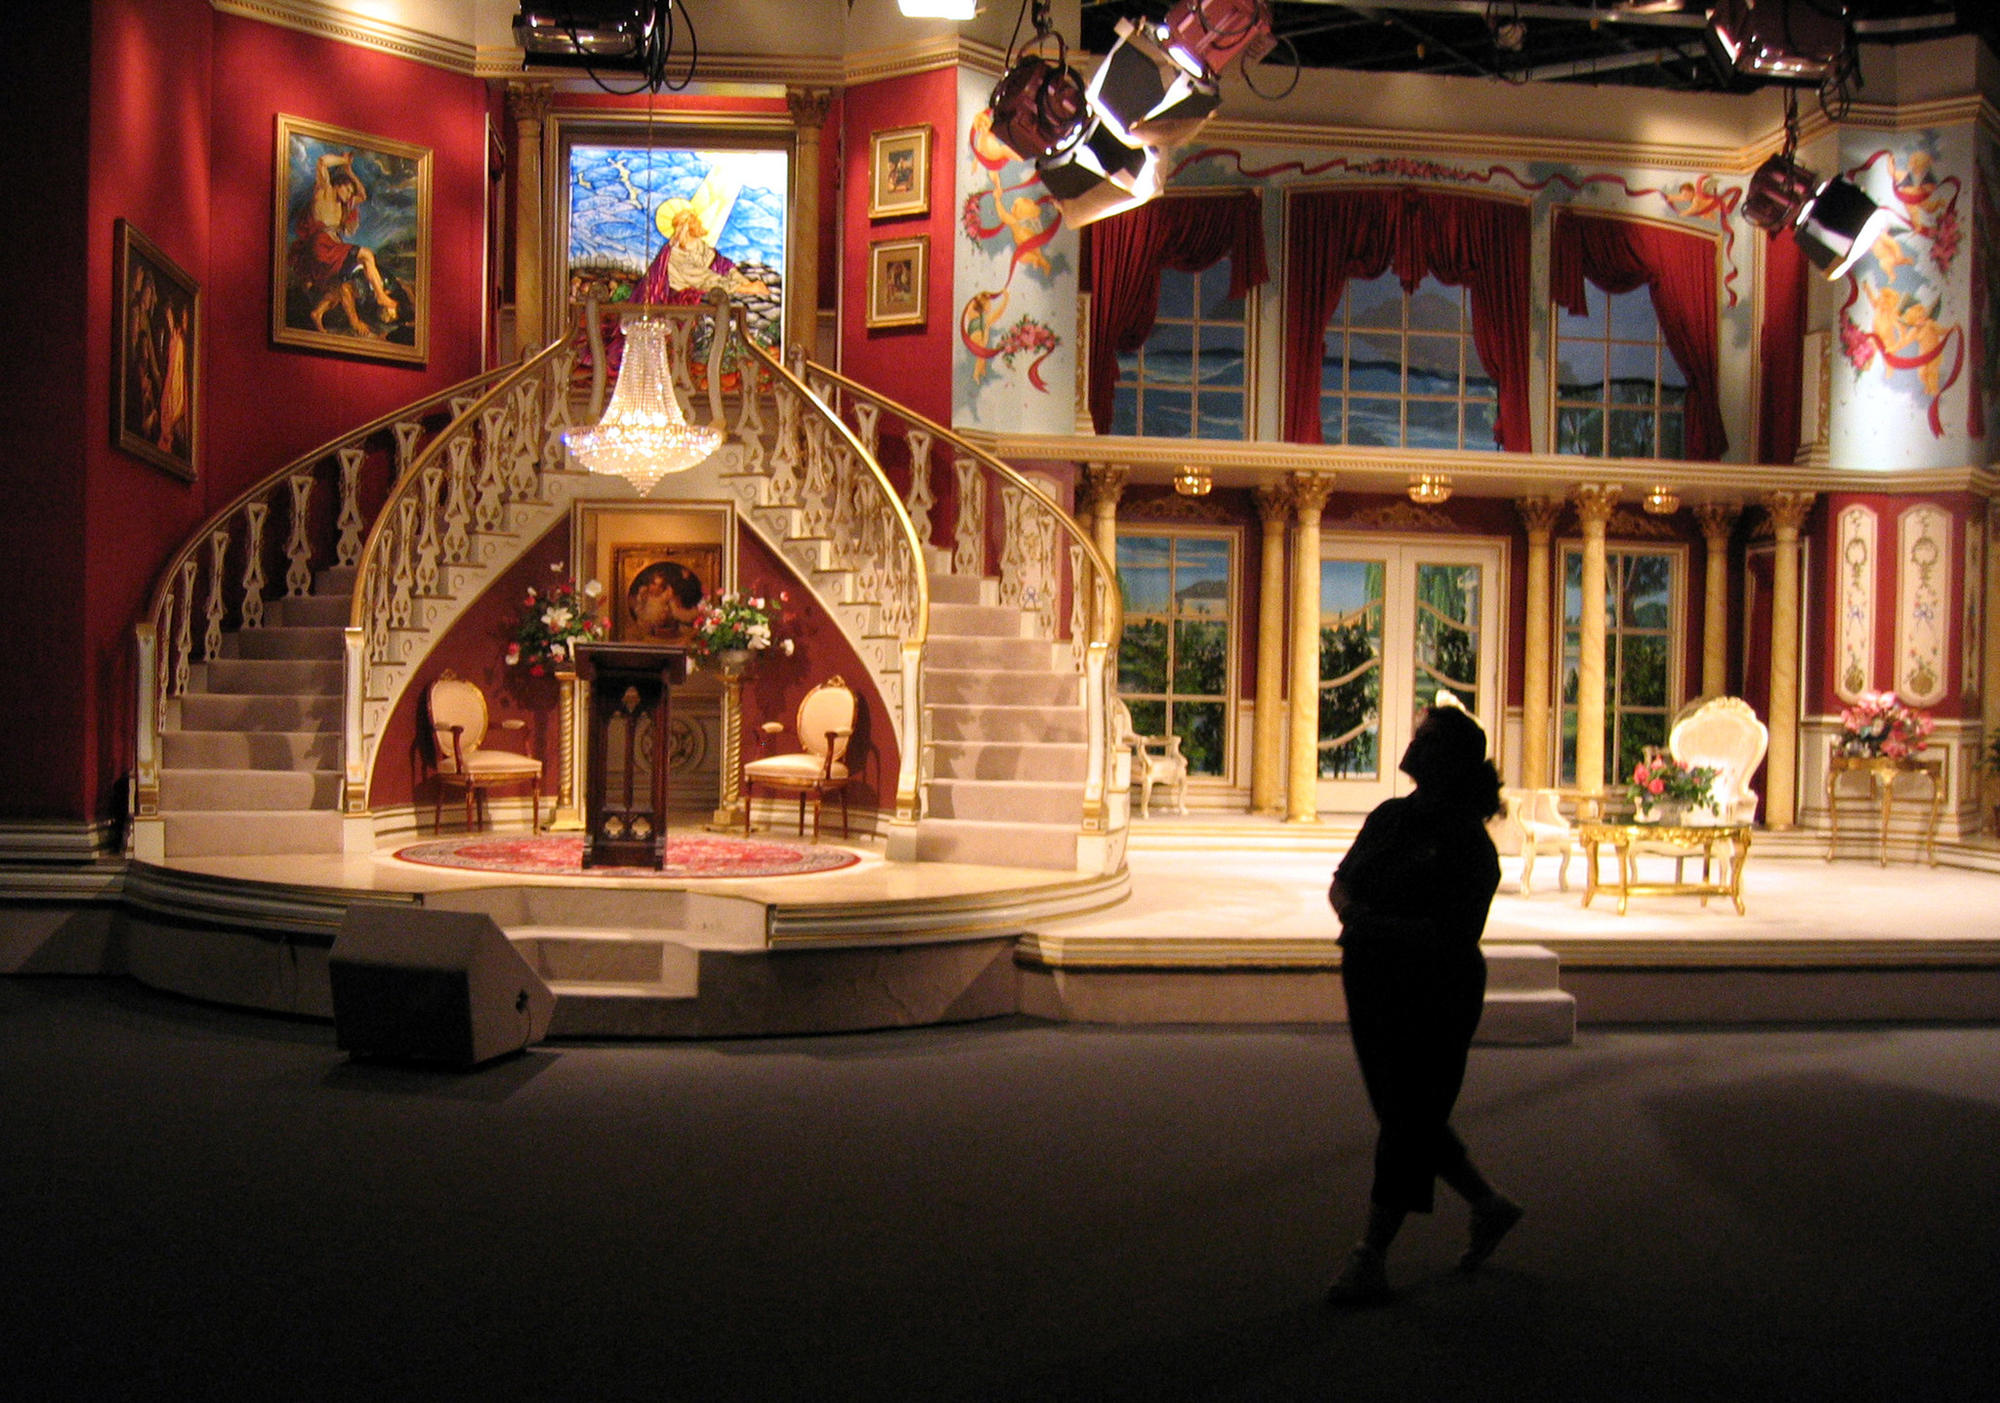 Trinity Broadcasting Network's International Production Center in Irving, Texas, showing one the sets used in television production.